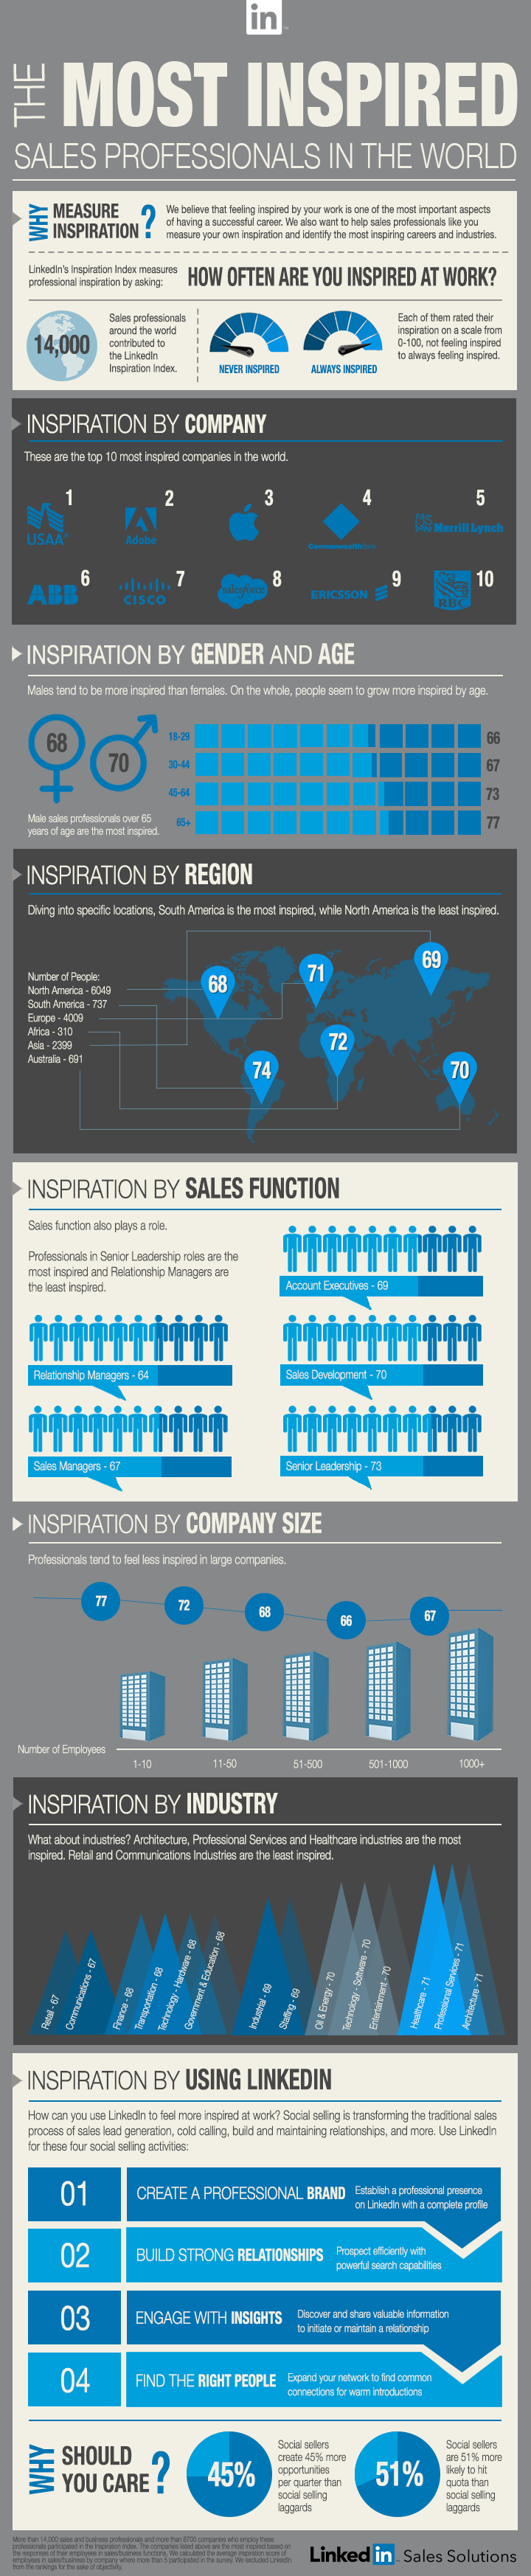 Infographic: The Most Inspired Sales Professionals in the World #infographic